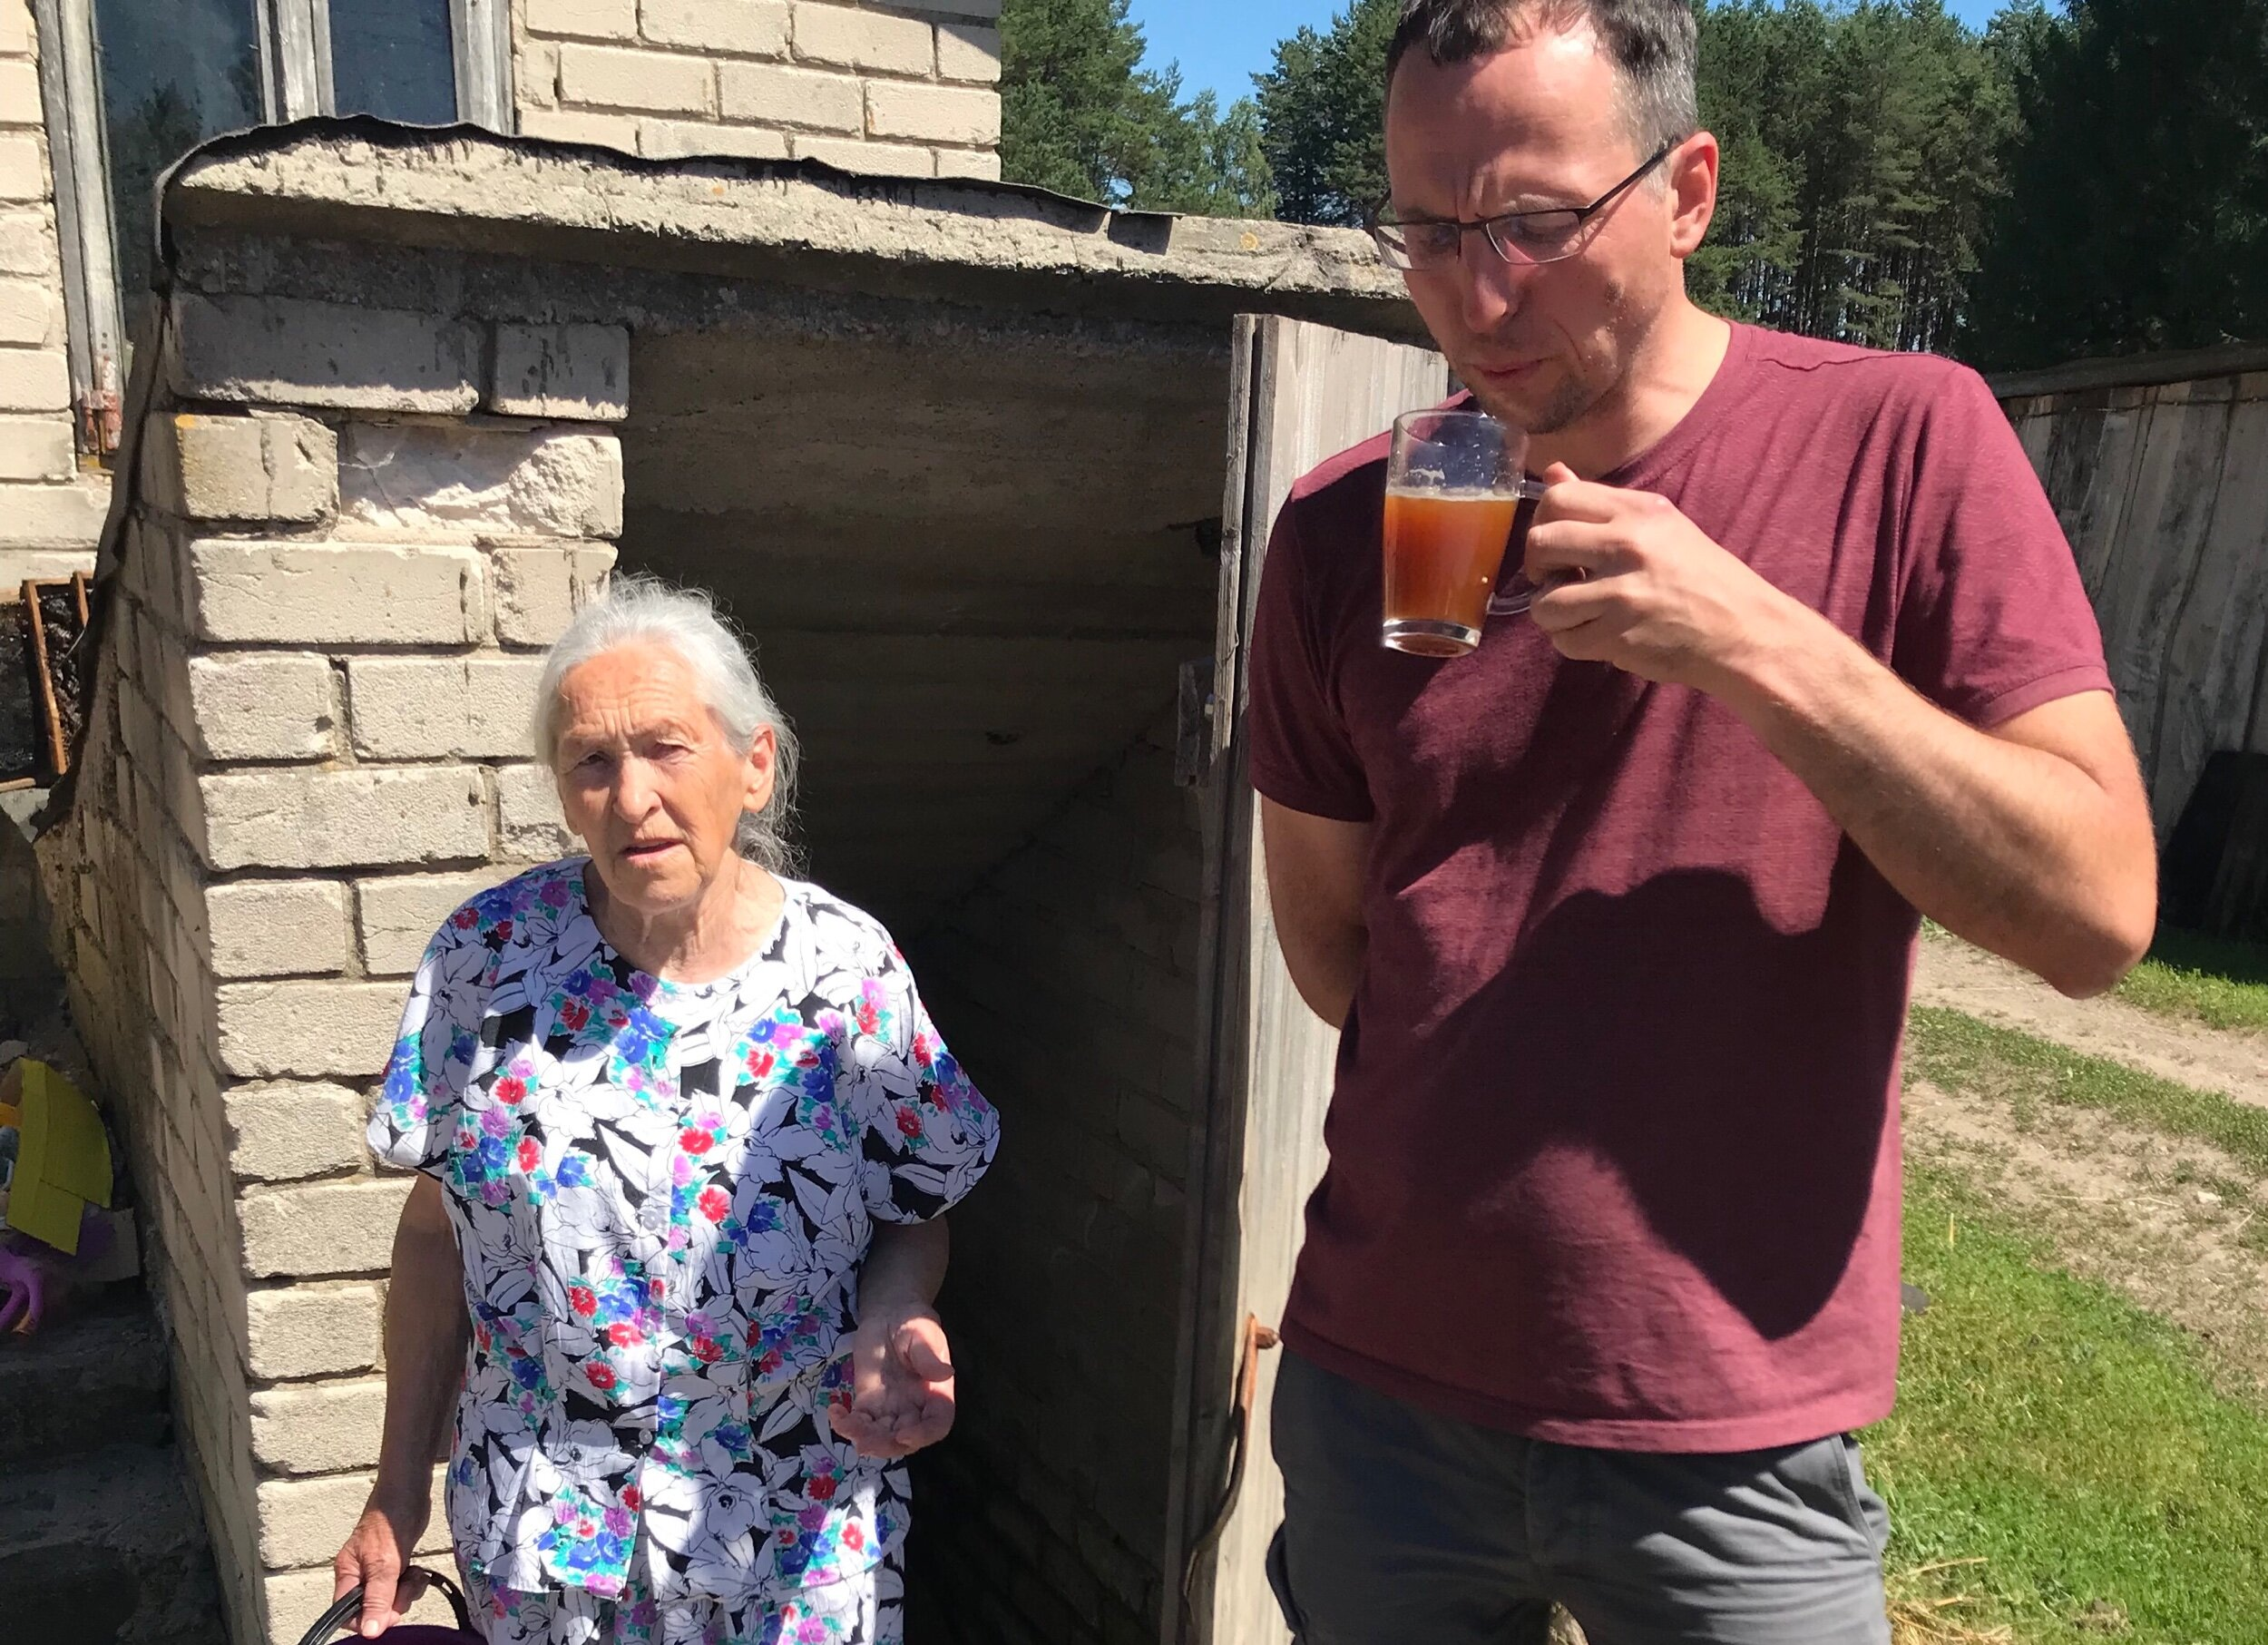 Martynas Savickis drinking a keptinis brewed by Ona Giriūnienė in Južintai village, Panevėžys district. She makes the beer in the outer kitchen of her barn, and I would very much love to visit her! (Photo courtesy Martynas)